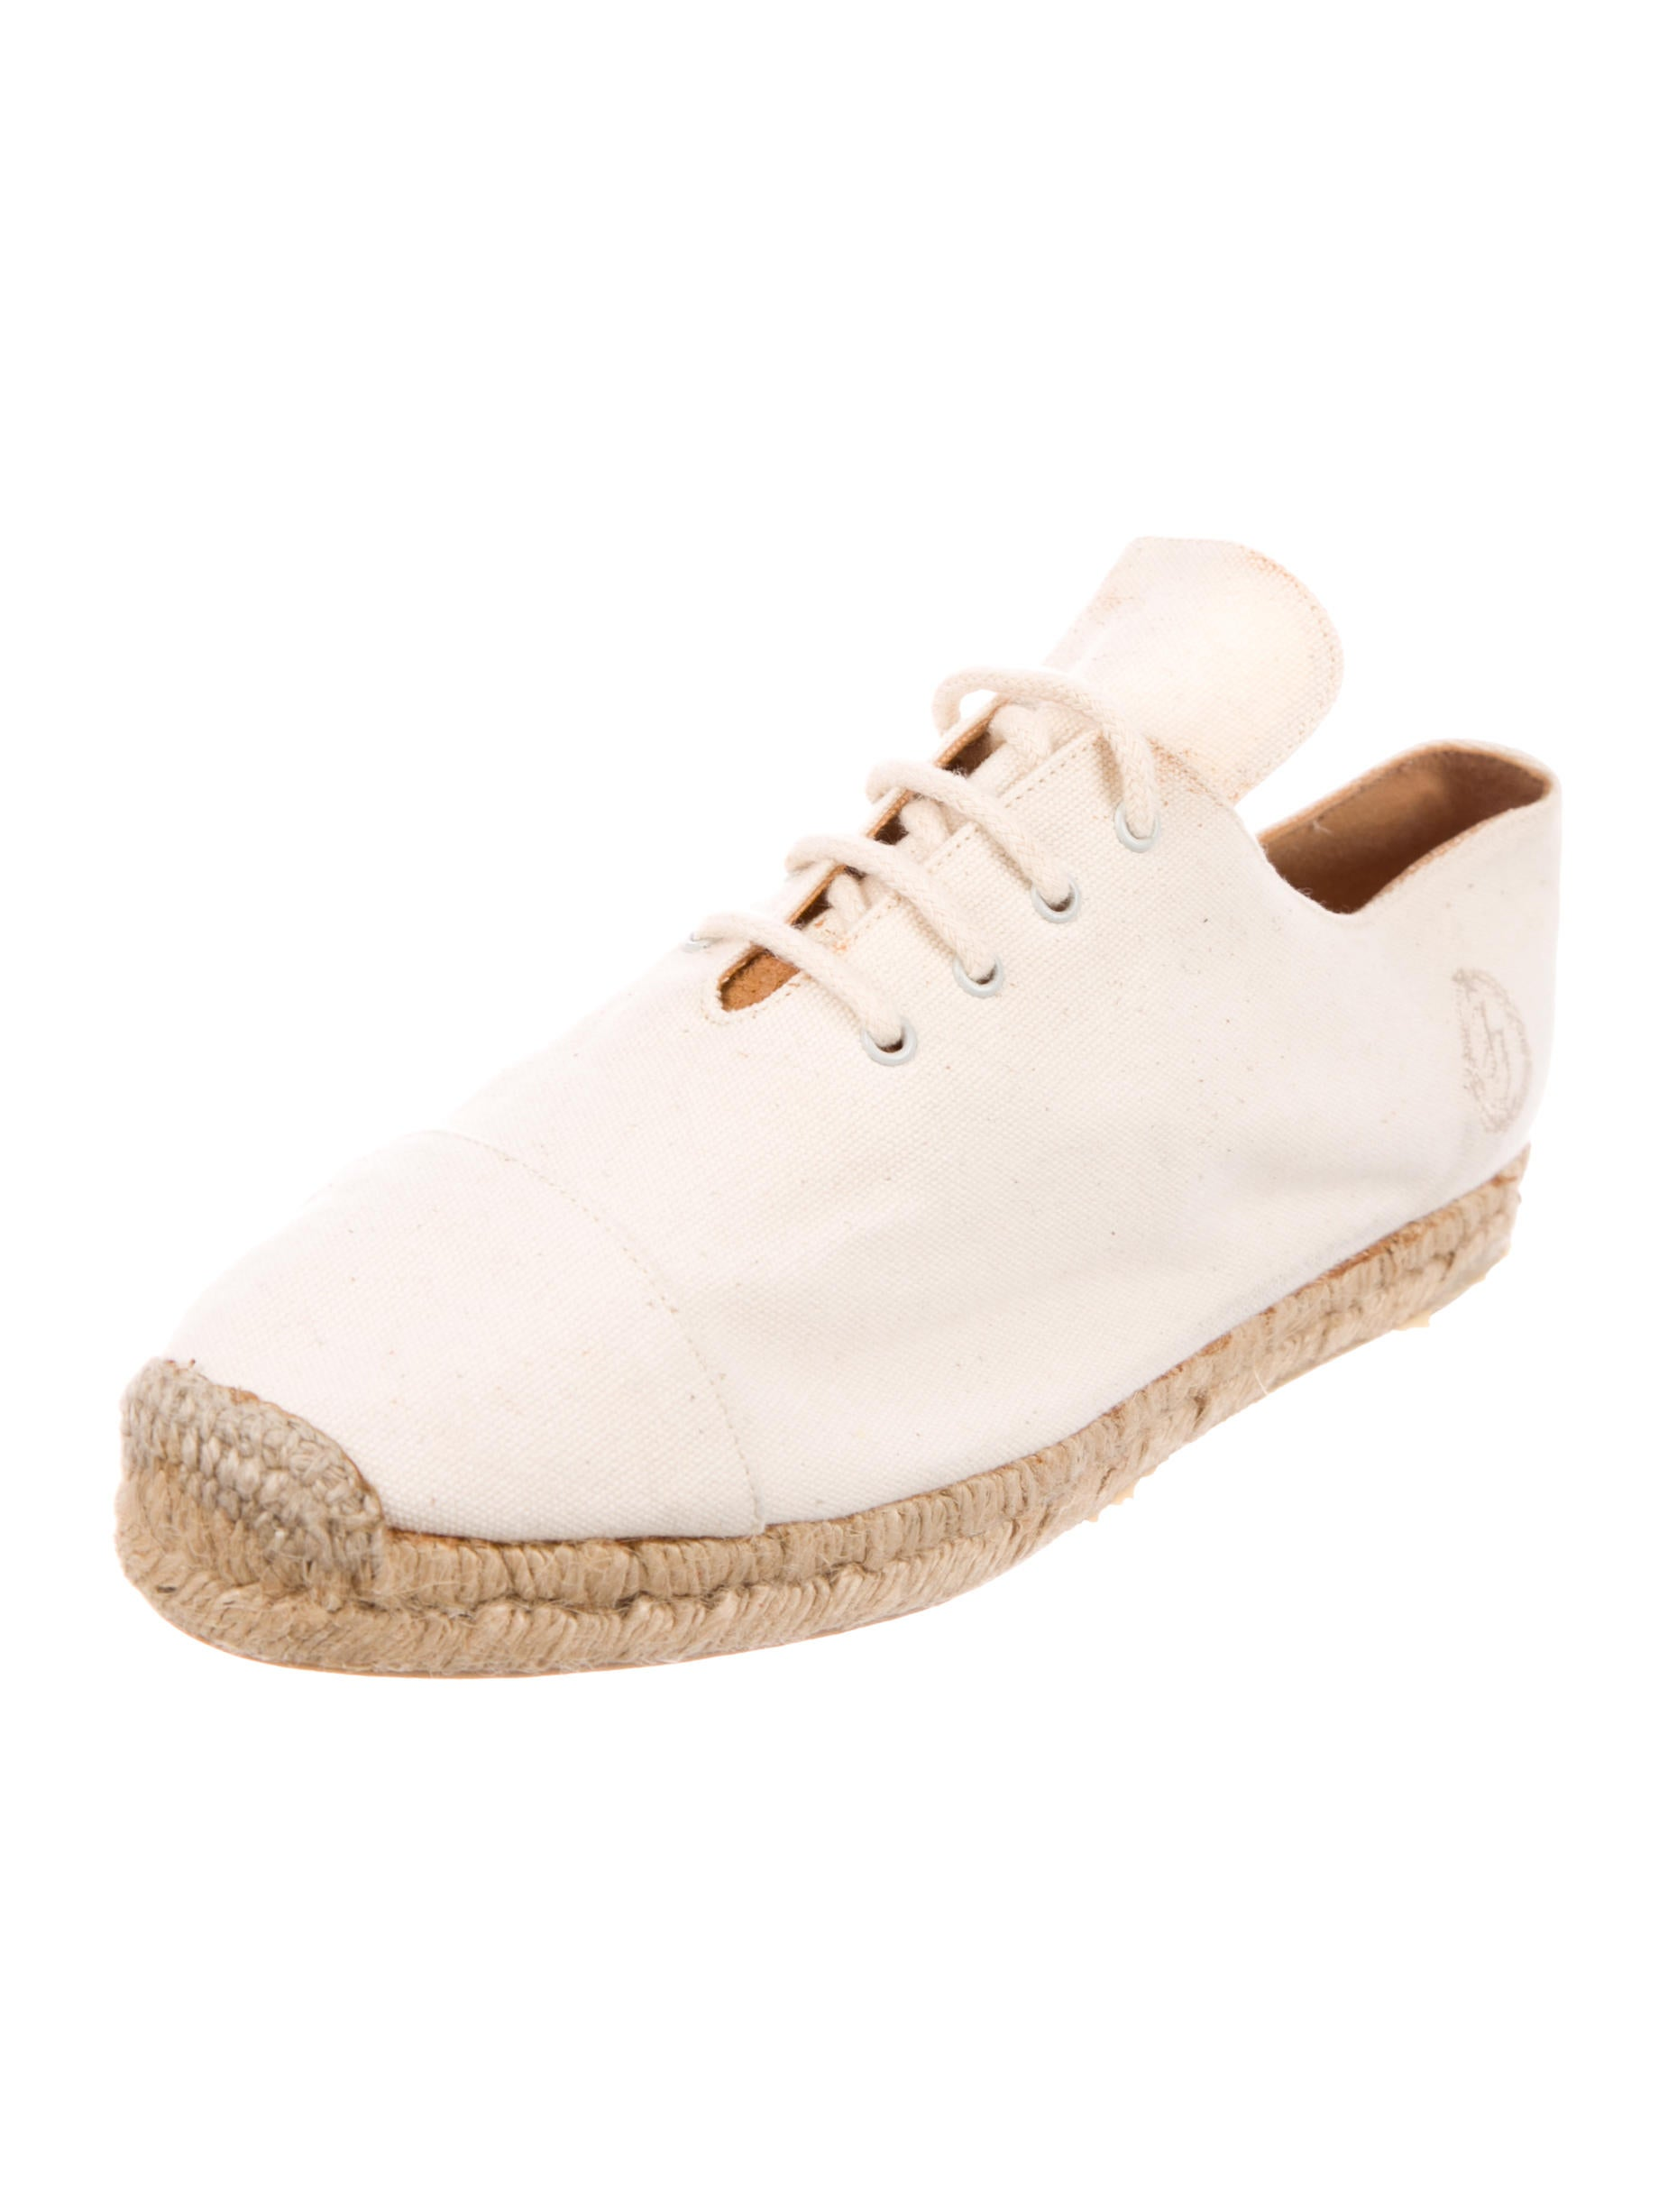 free shipping eastbay the cheapest for sale Ines de la Fressange Canvas Round-Toe Espadriles PsO4Z6Q